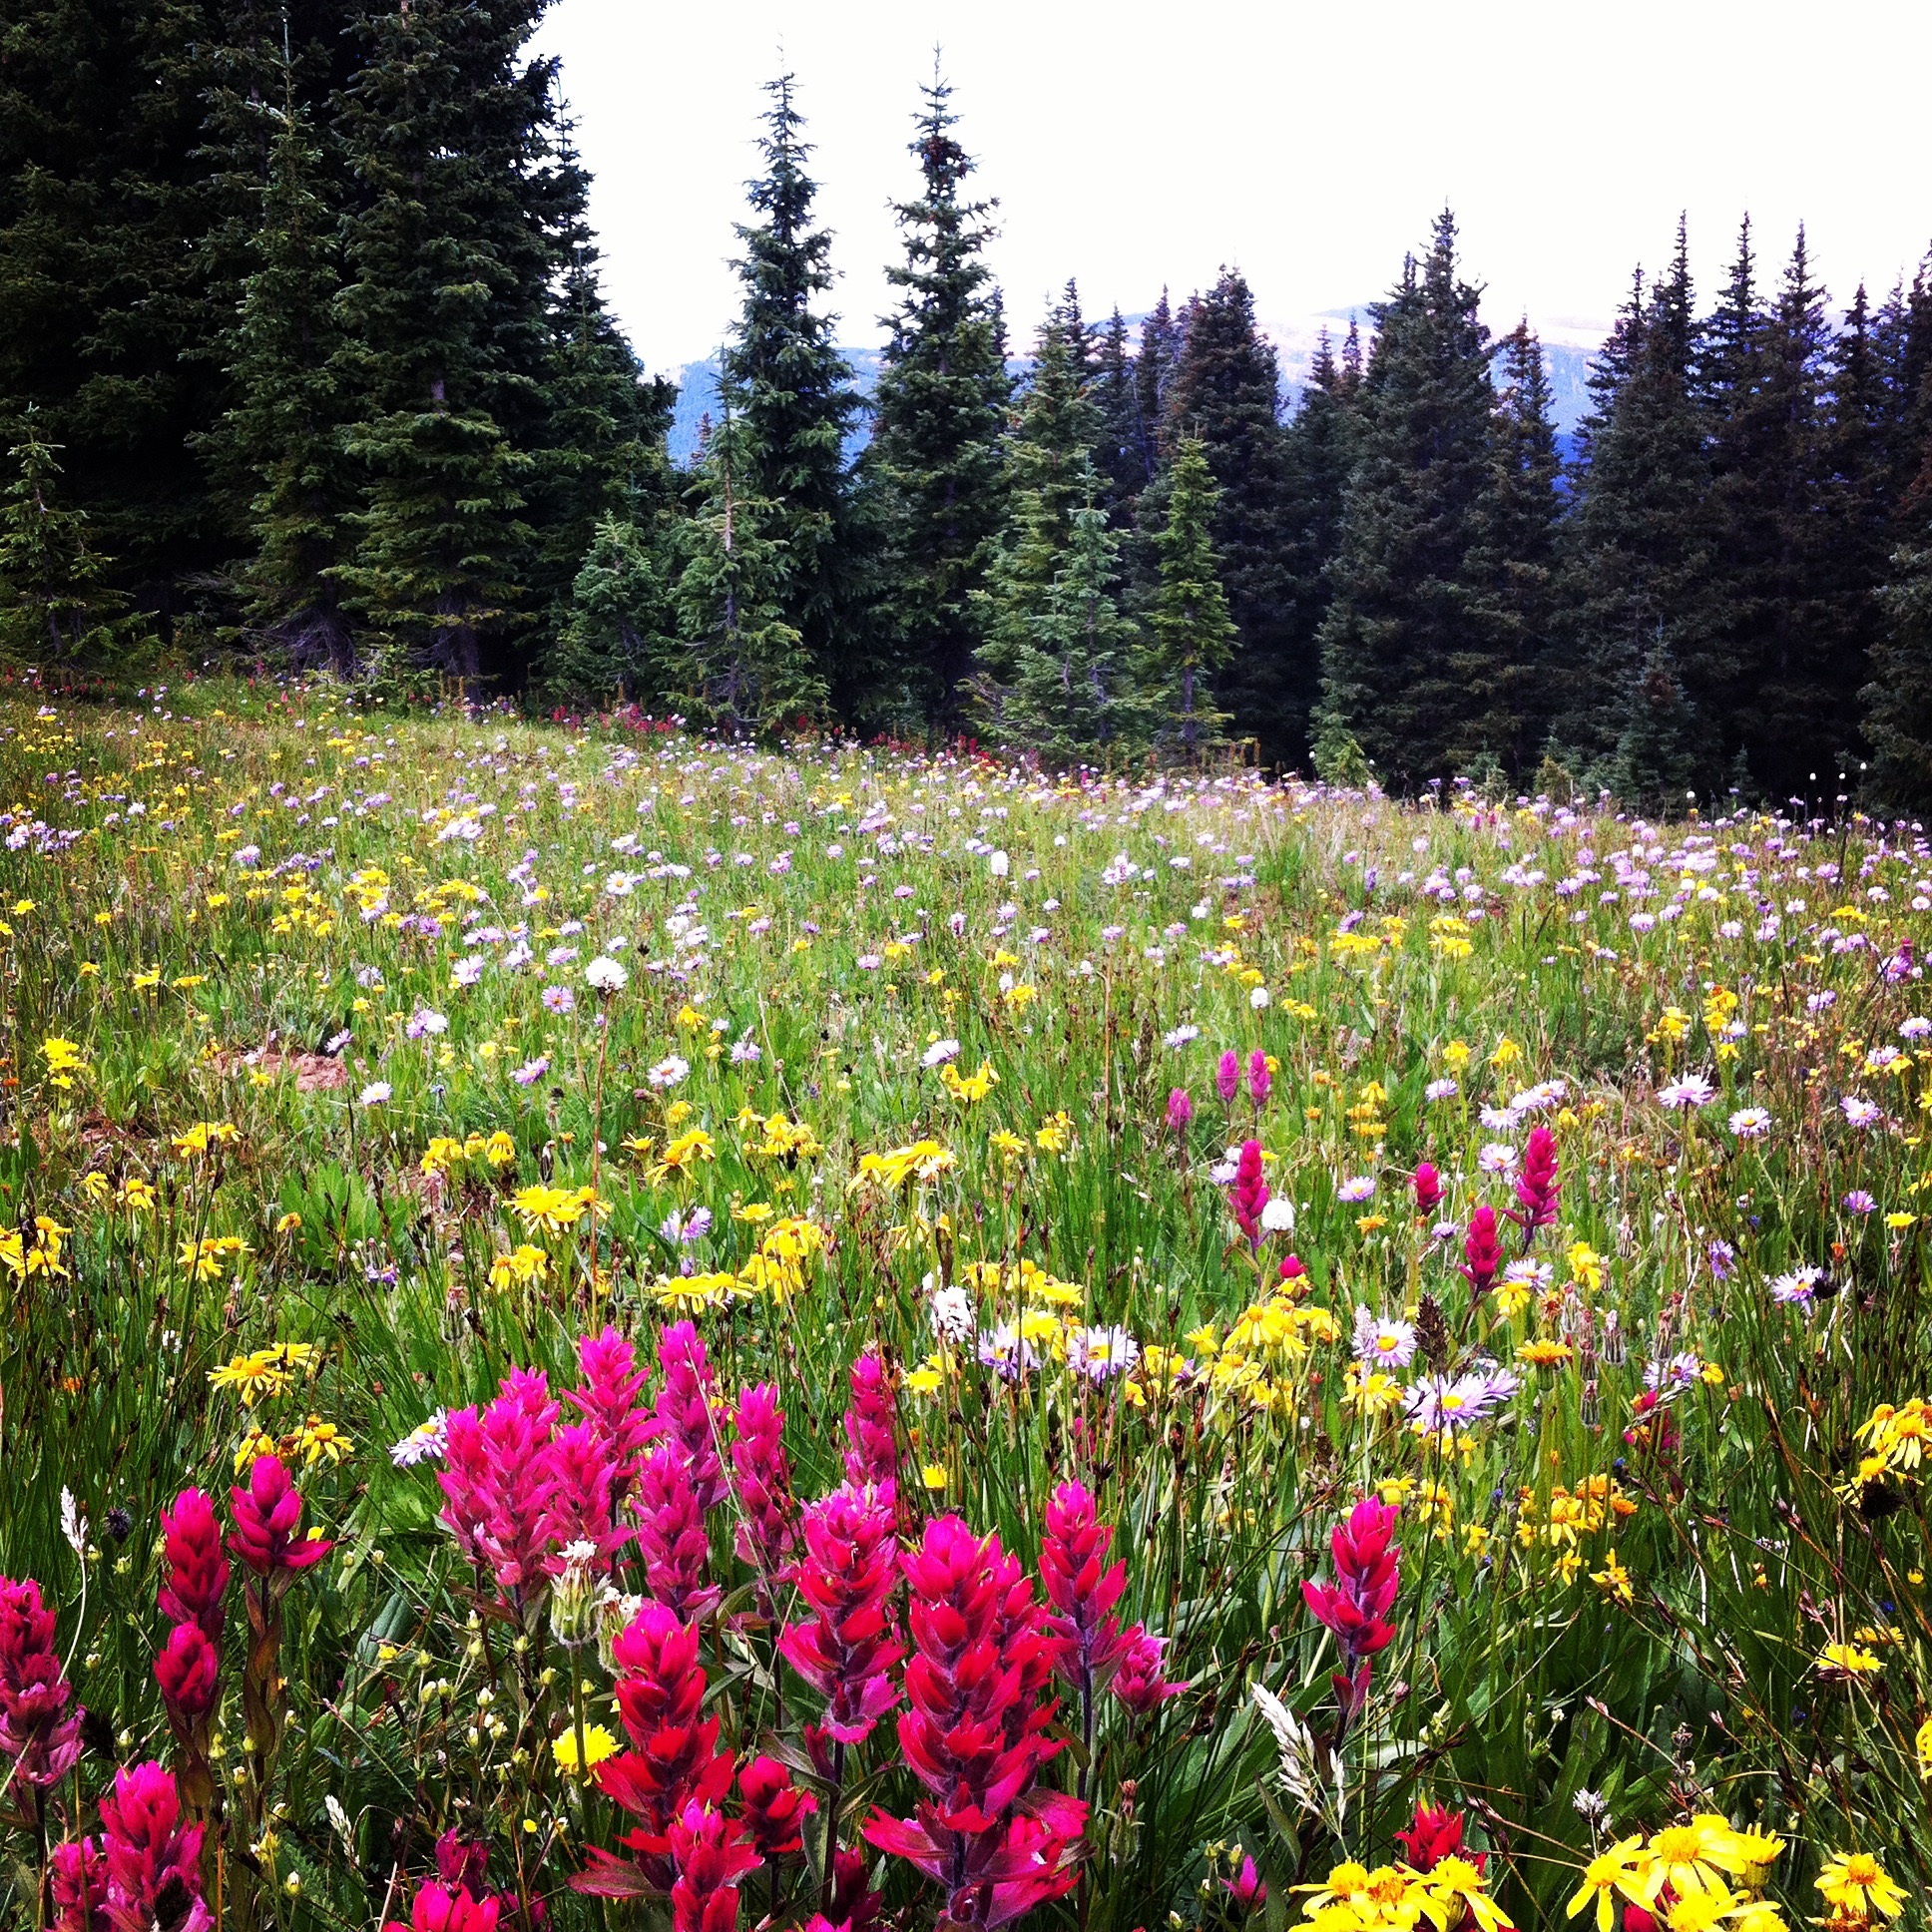 [Image: A mountain meadow is filled with bright pink Indian Paintbrush flowers and other yellow and white flowers. The grass and the pine trees at the edge of the meadow are all green. The sky is white.]